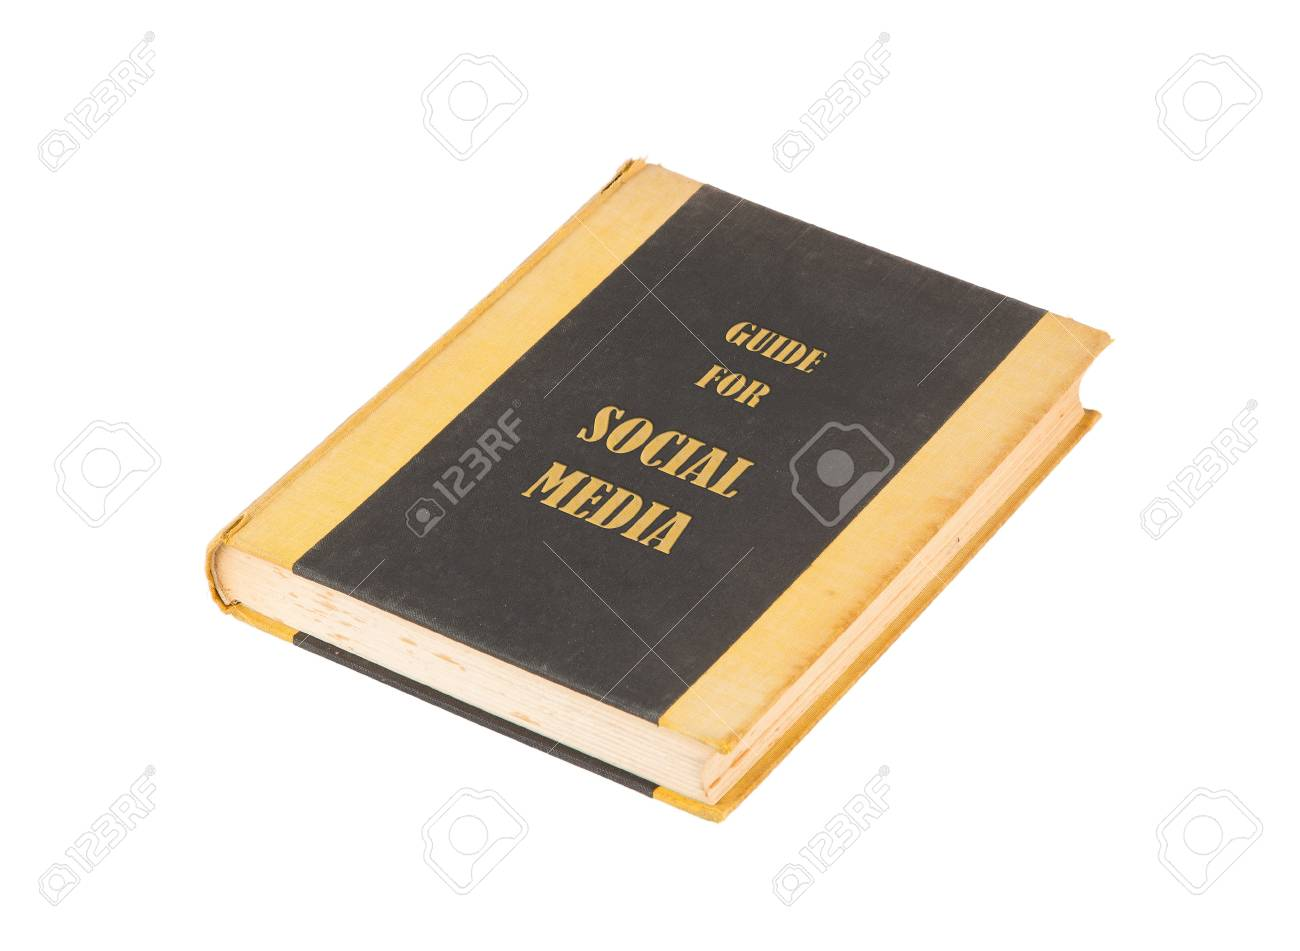 Old book with a social media concept title, white background Stock Photo - 17272642